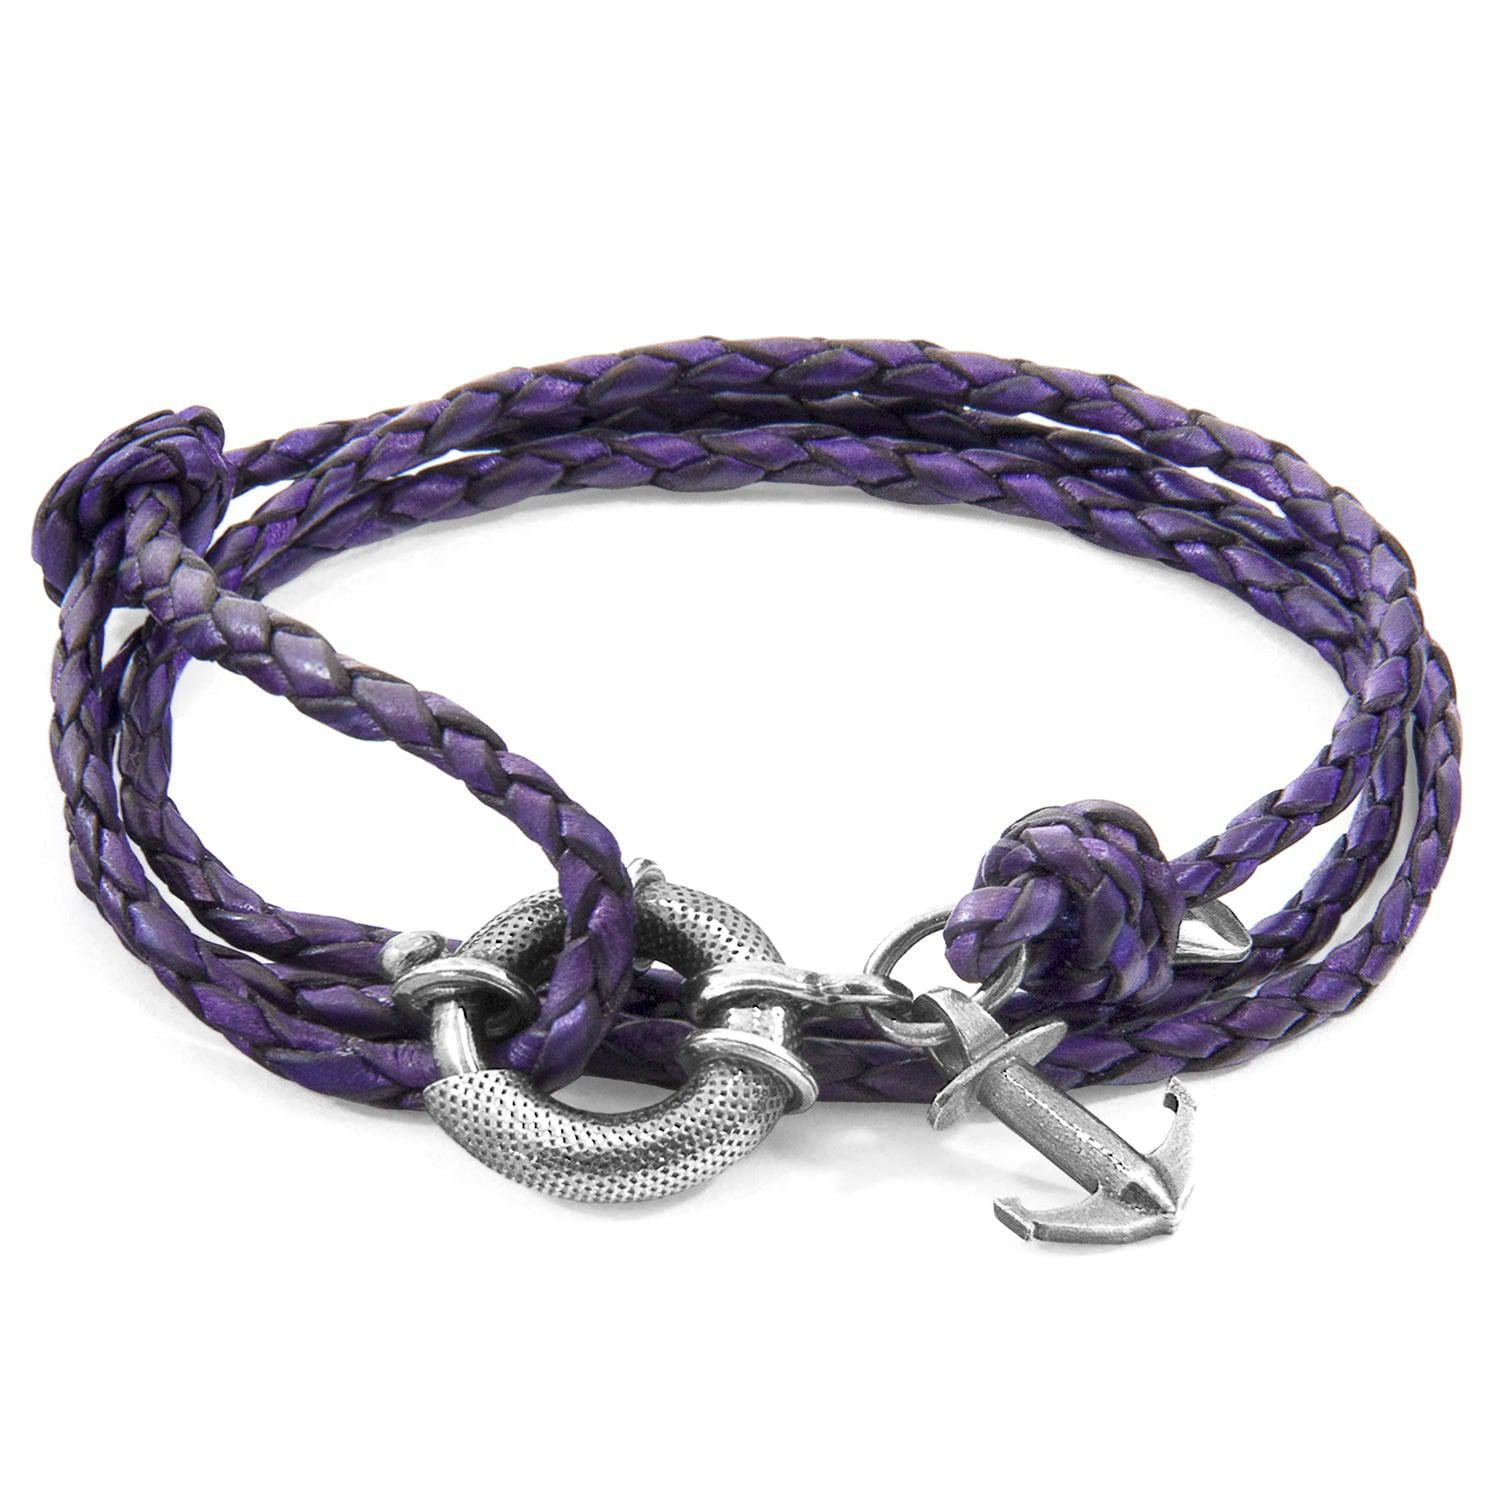 Anchor & Crew Grape Purple Clyde Silver and Leather Bracelet AWEmoR